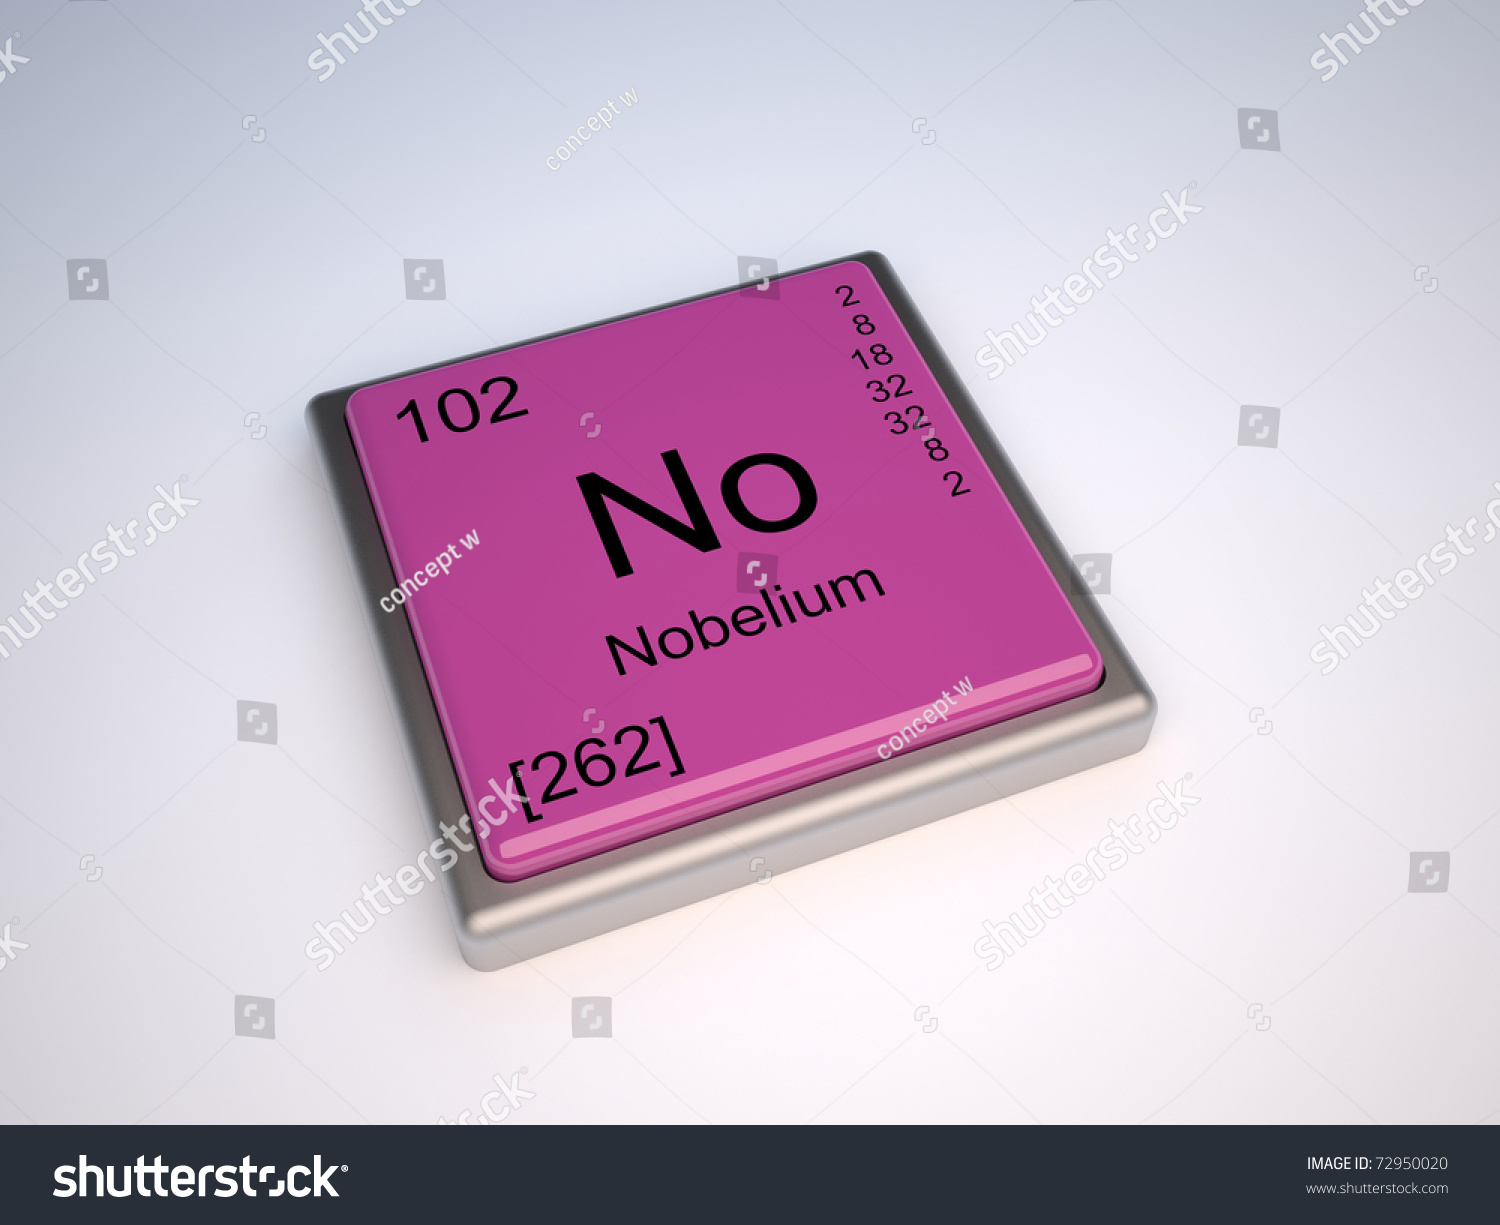 Nobelium chemical element periodic table symbol stock for Periodic table no 52